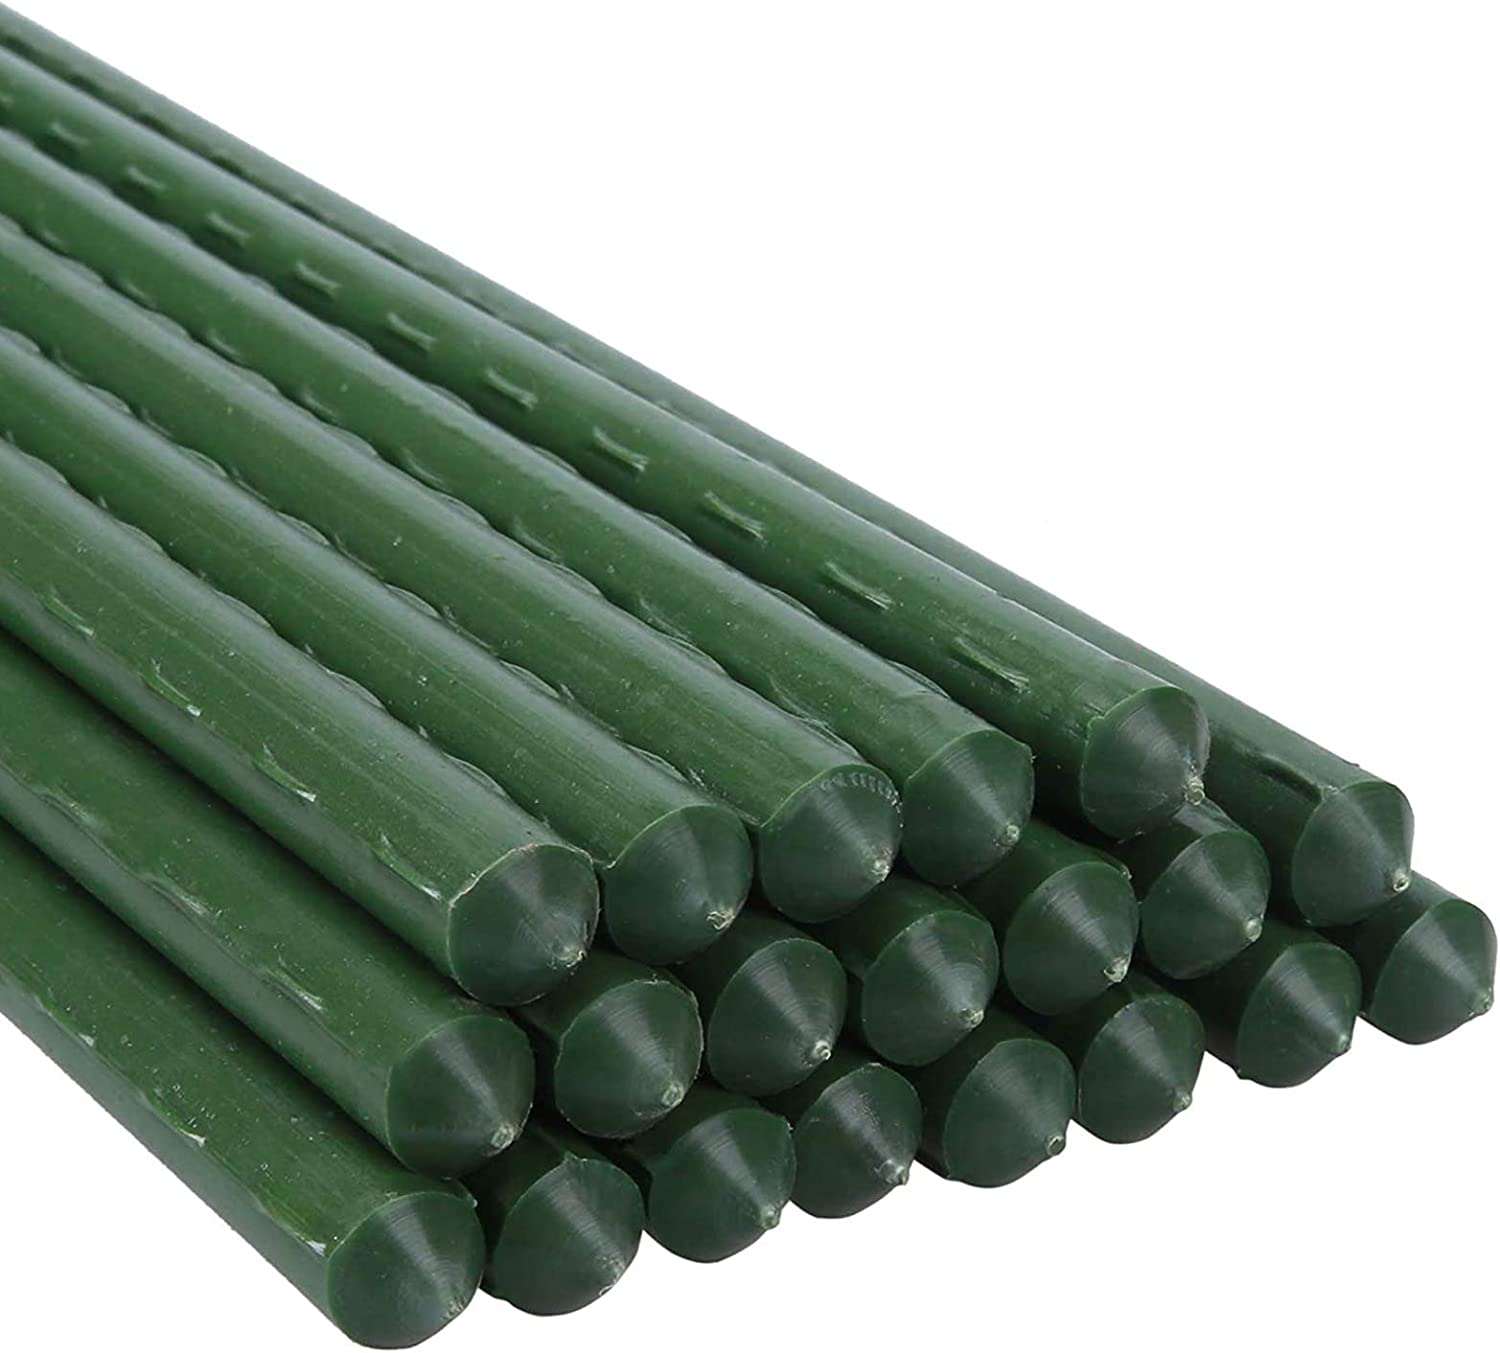 PUTING Steel Garden Stakes Plant Stakes with Plastic Coated Pack of 20 (60 inches)